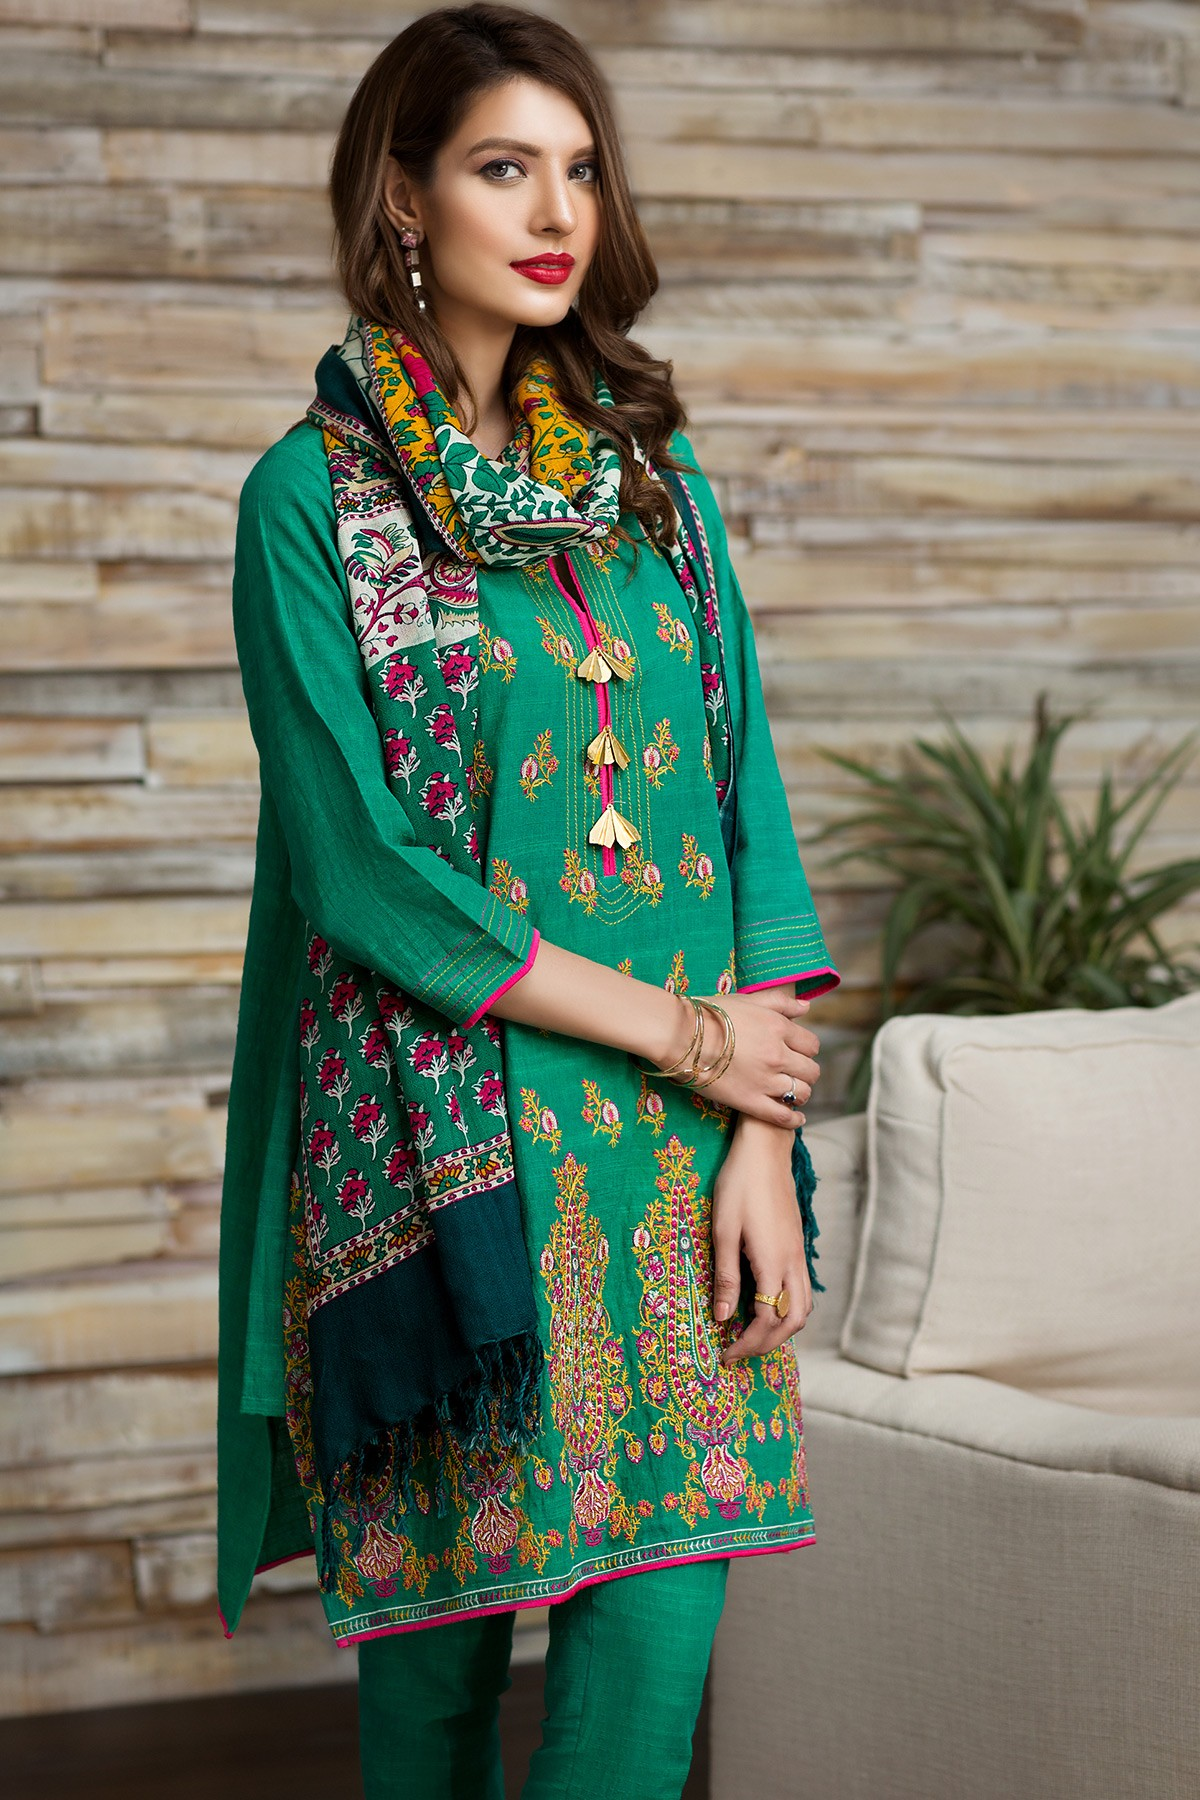 Green khaddar dress by khaadi winter collection